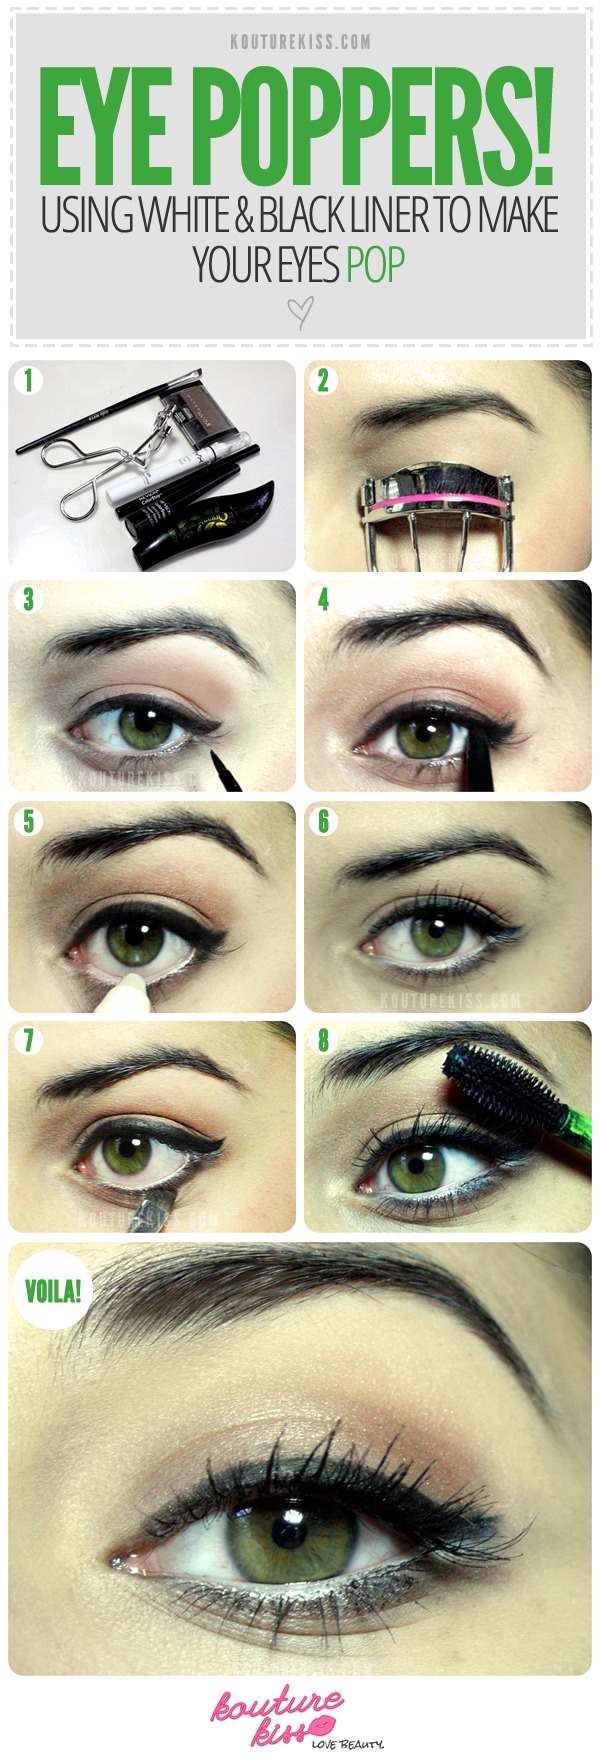 Makeup to make your eyes pop